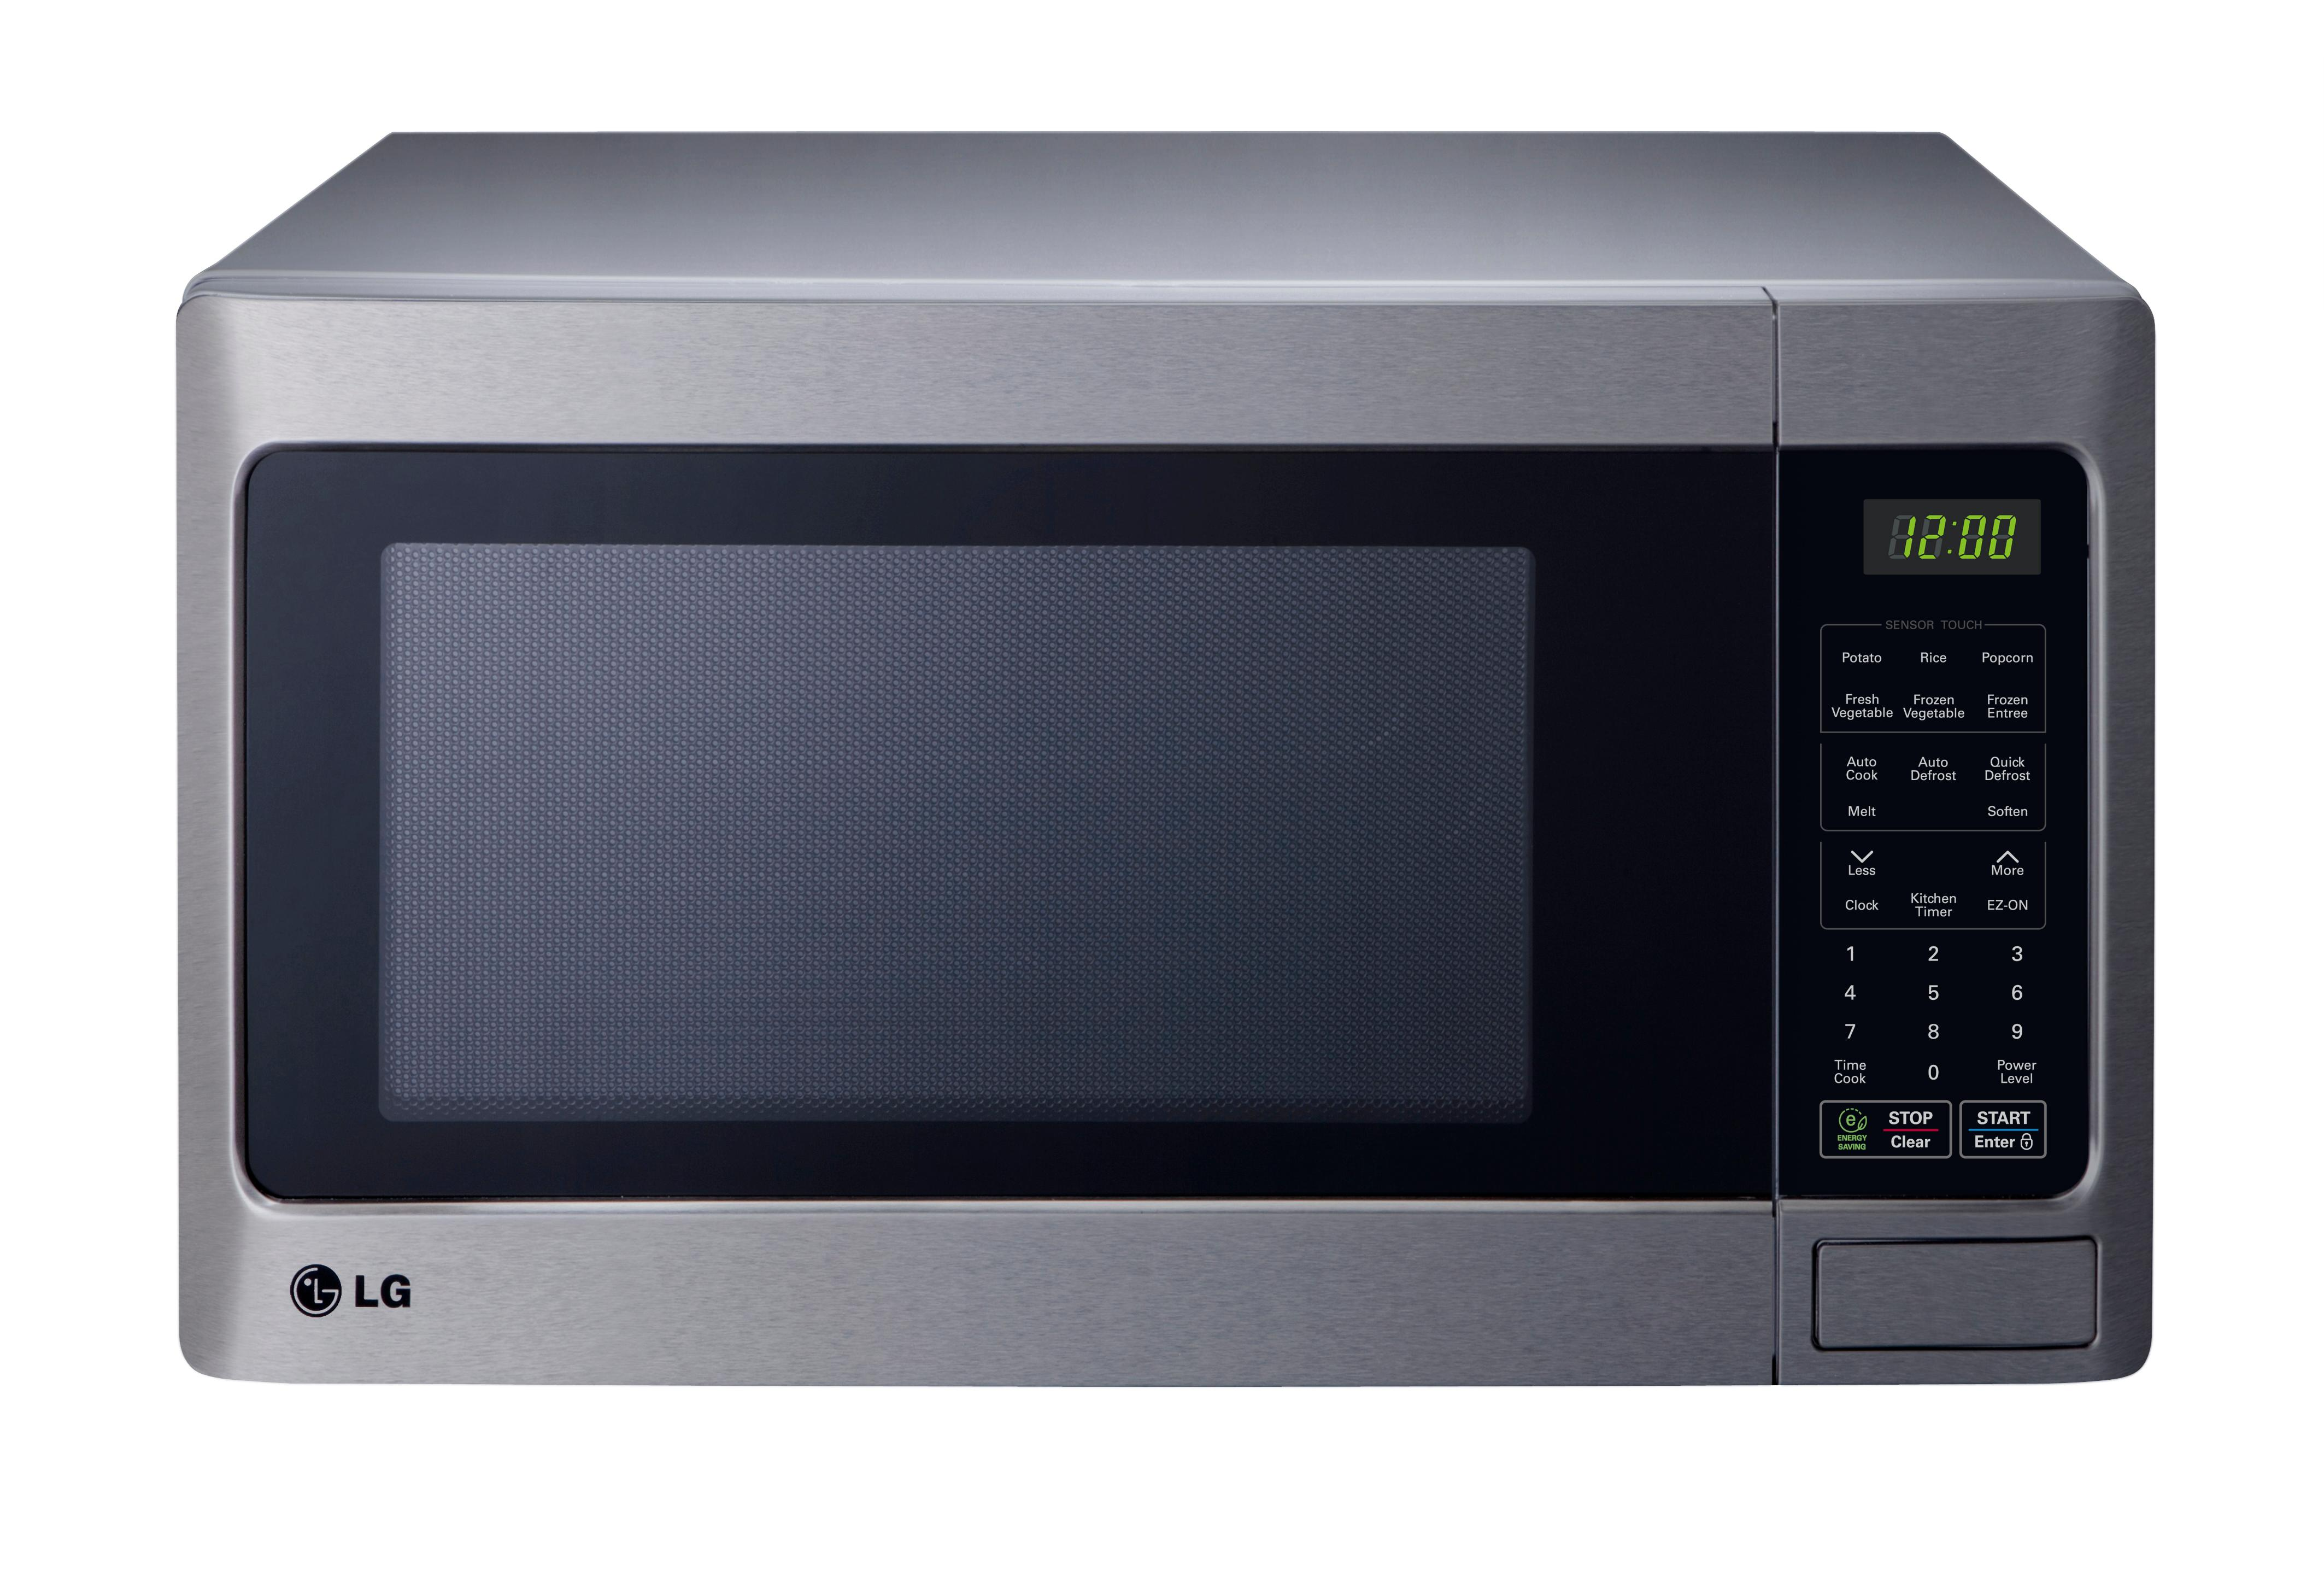 Countertop Microwave Reviews 2013 : Amazon.com: LG LCRT1513ST Countertop Microwave Oven, 1100-watt ...